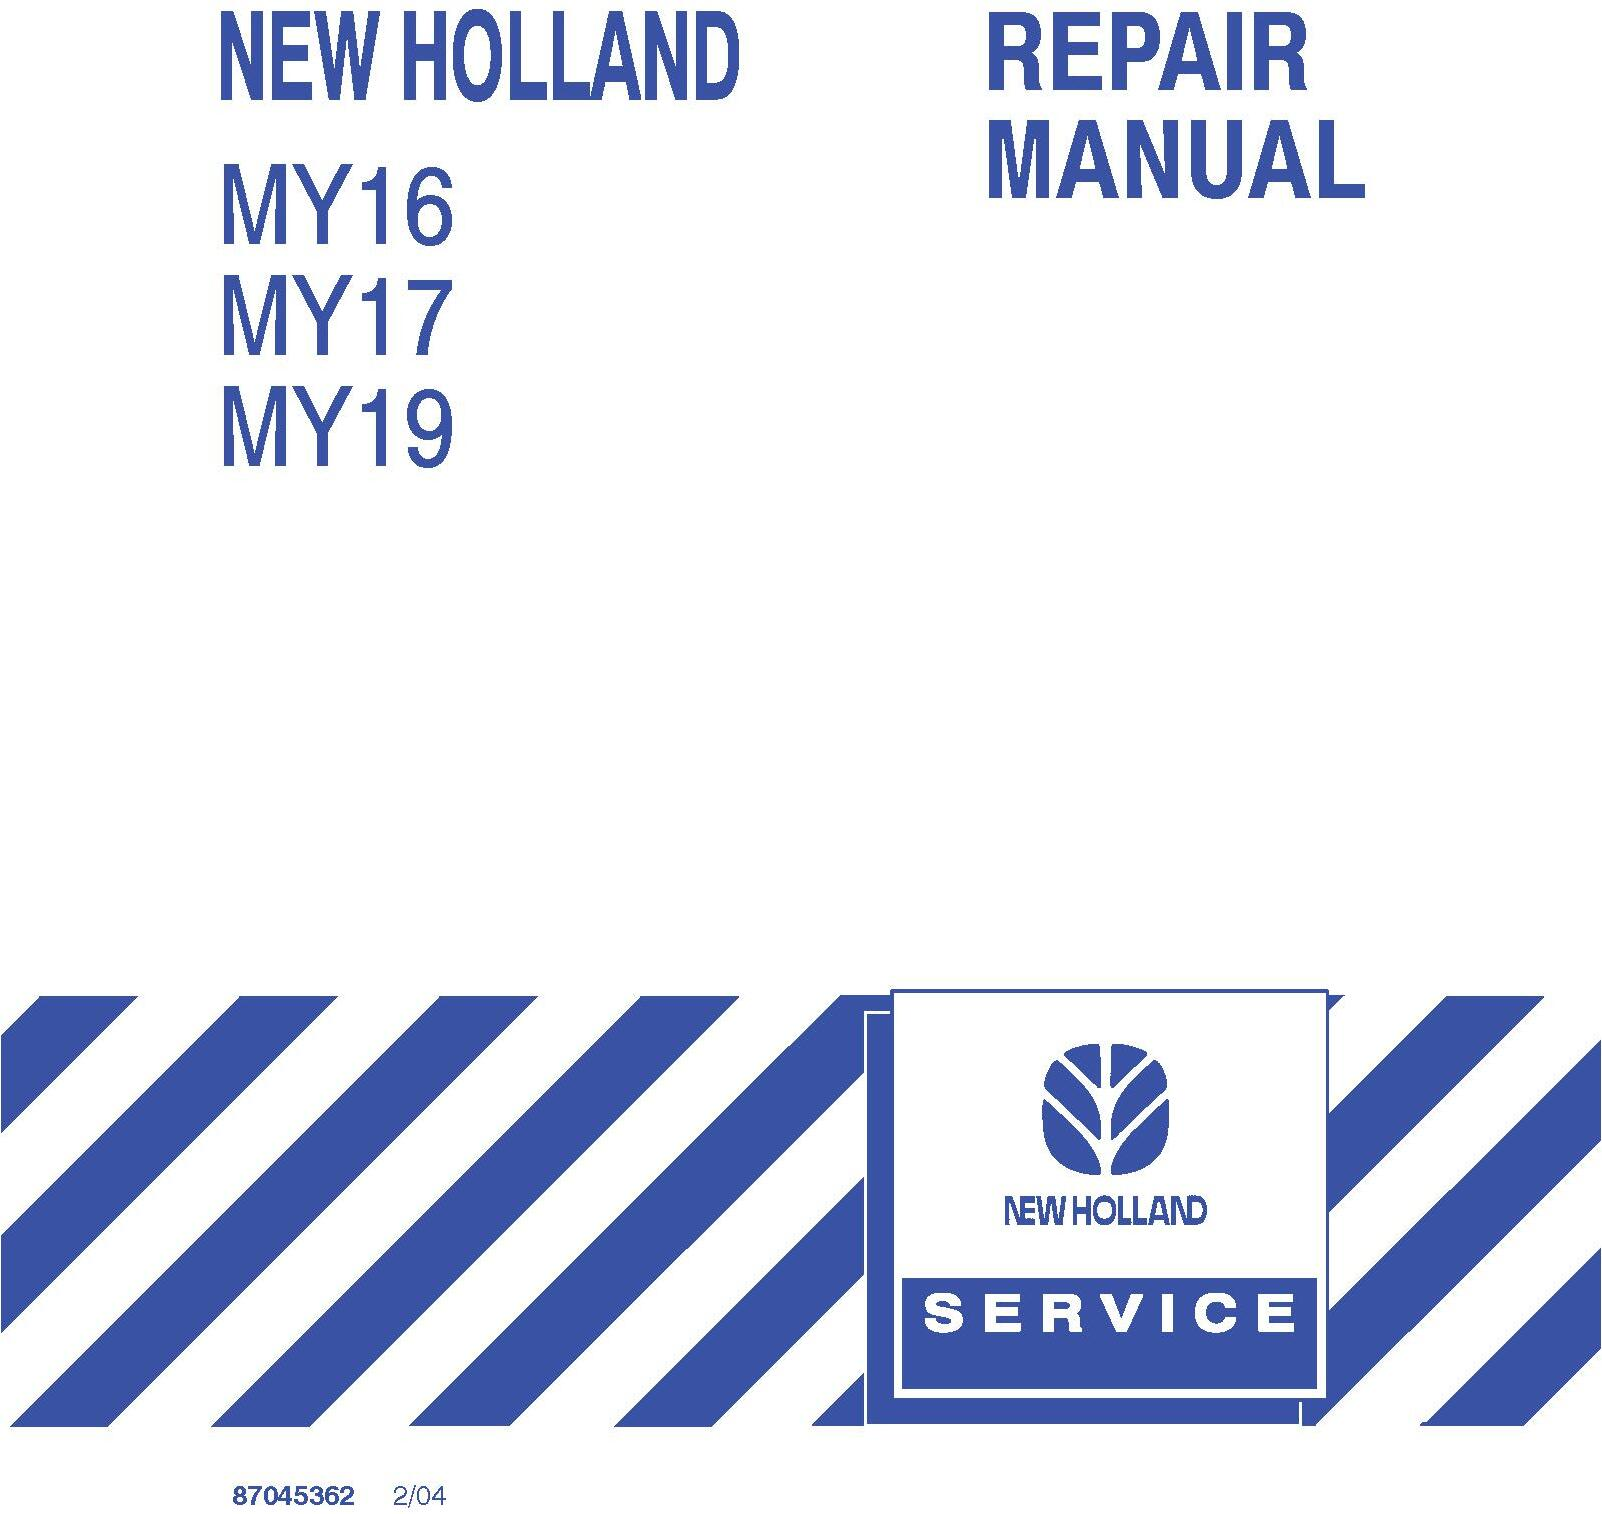 New Holland MY16, MY17, MY19 Yard Tractor Service Manual - 19604